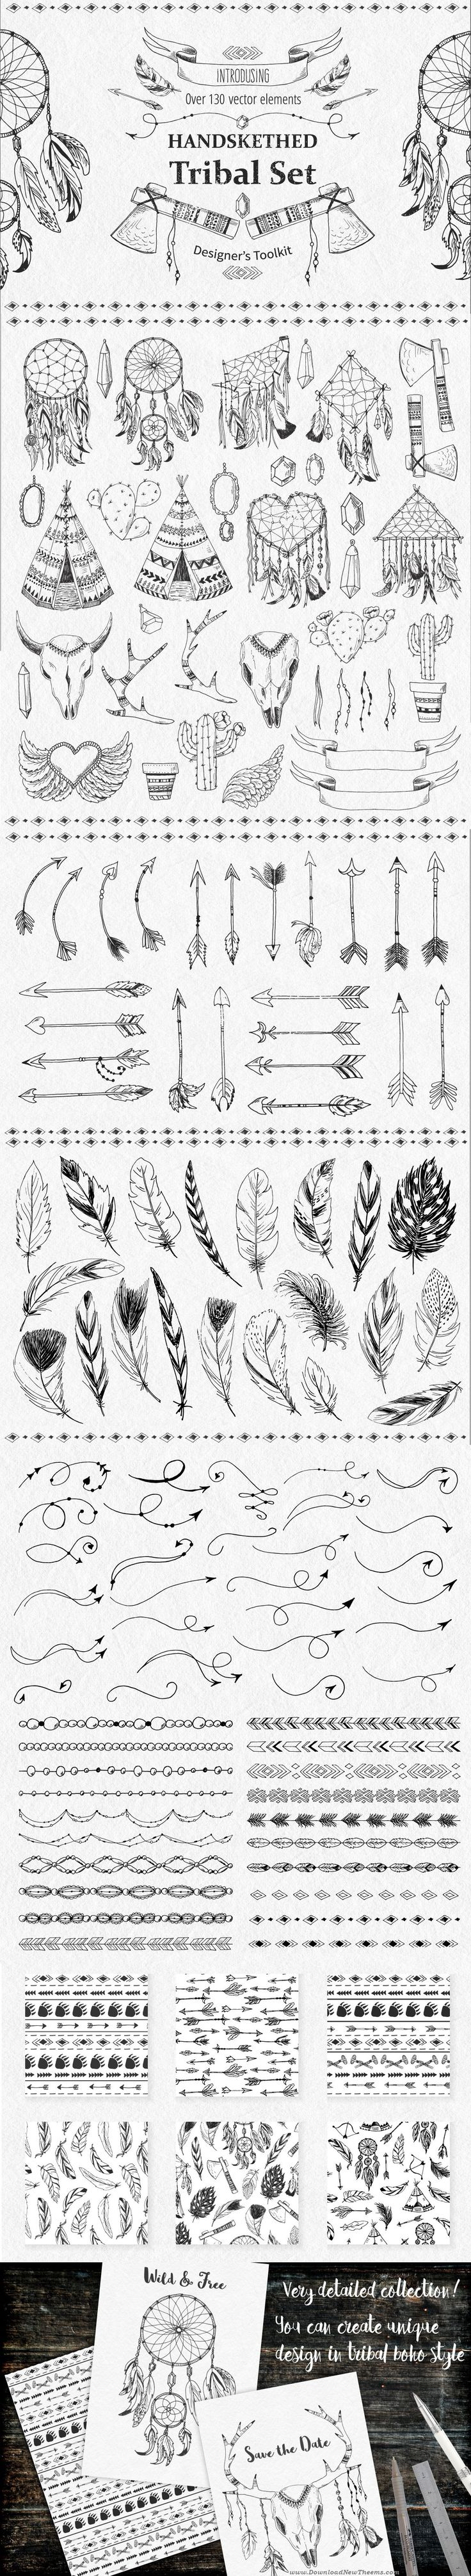 Tribal Design Vector Set > This big set of #tribal ethnic #design elements includes #handdrawn dream catchers, tipi, axes, bulls, deer, antlers, feathers, arrows, text dividers, #borders and other native elements. All this elements drawn by hand and then converted to #vector objects. #graphicsdesign